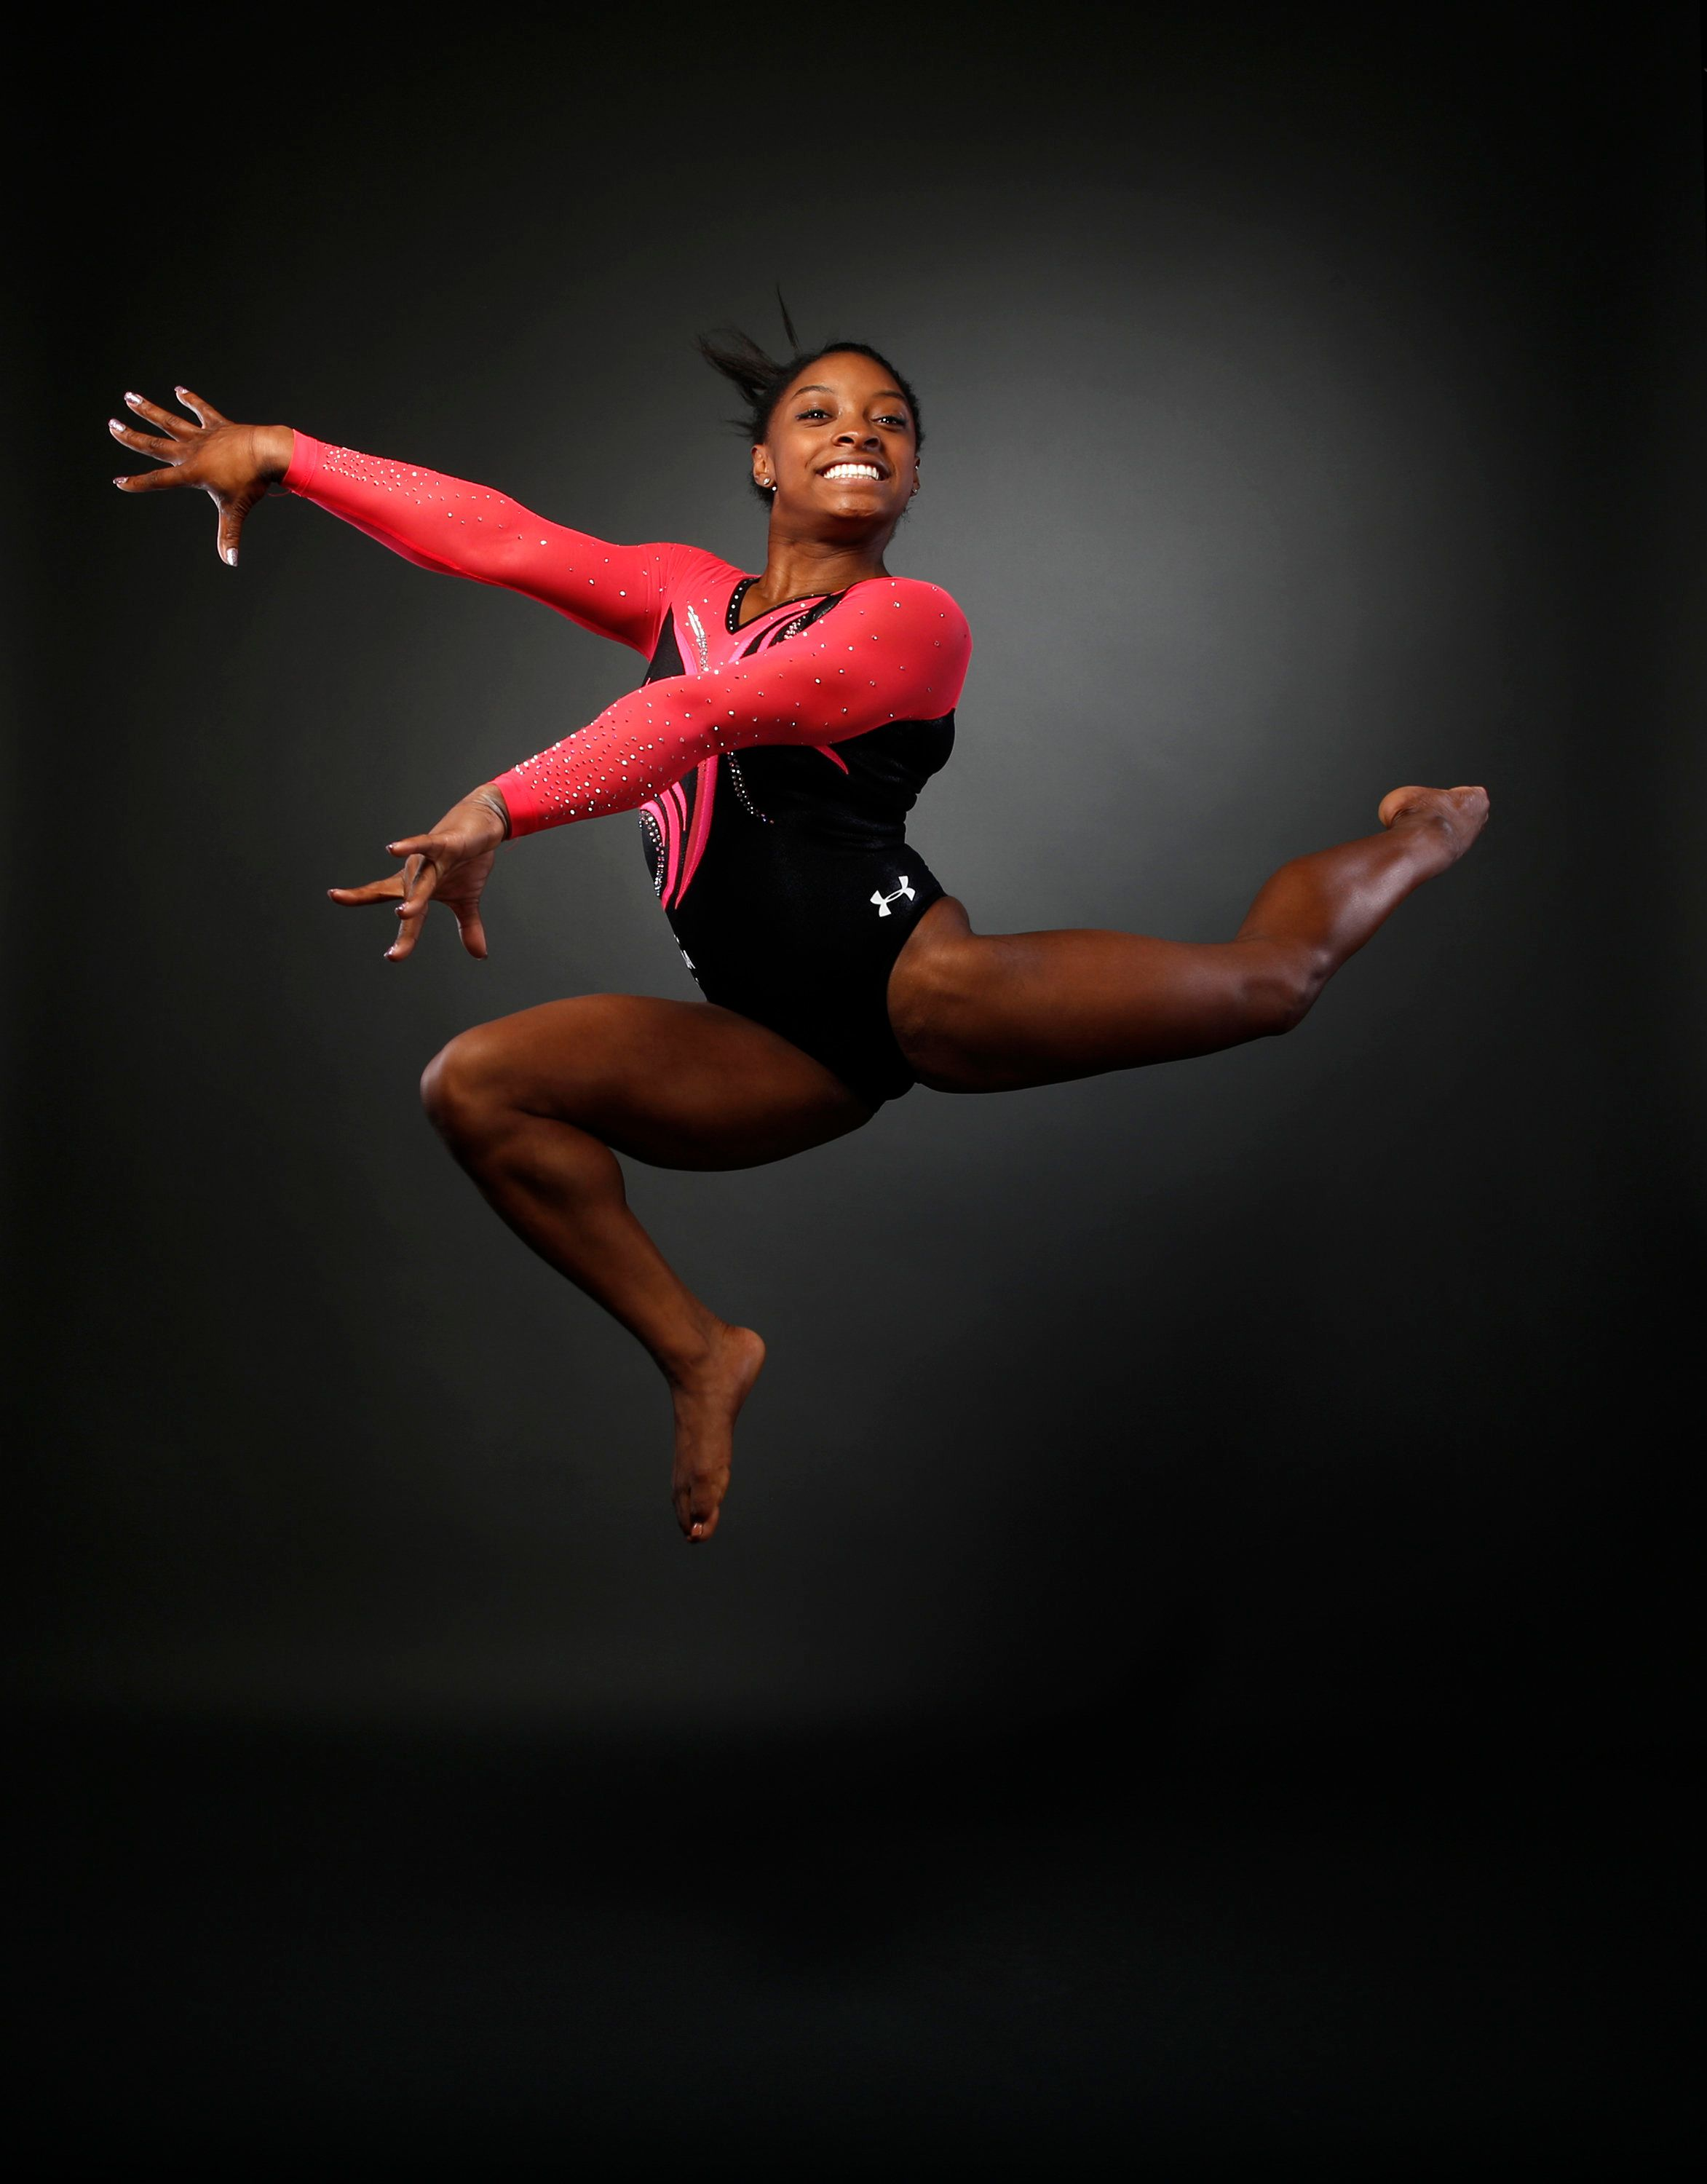 Gymnast Simone Biles is expected to bring back a gold medal (or more) from the Olympic Games in Rio de Janeiro.